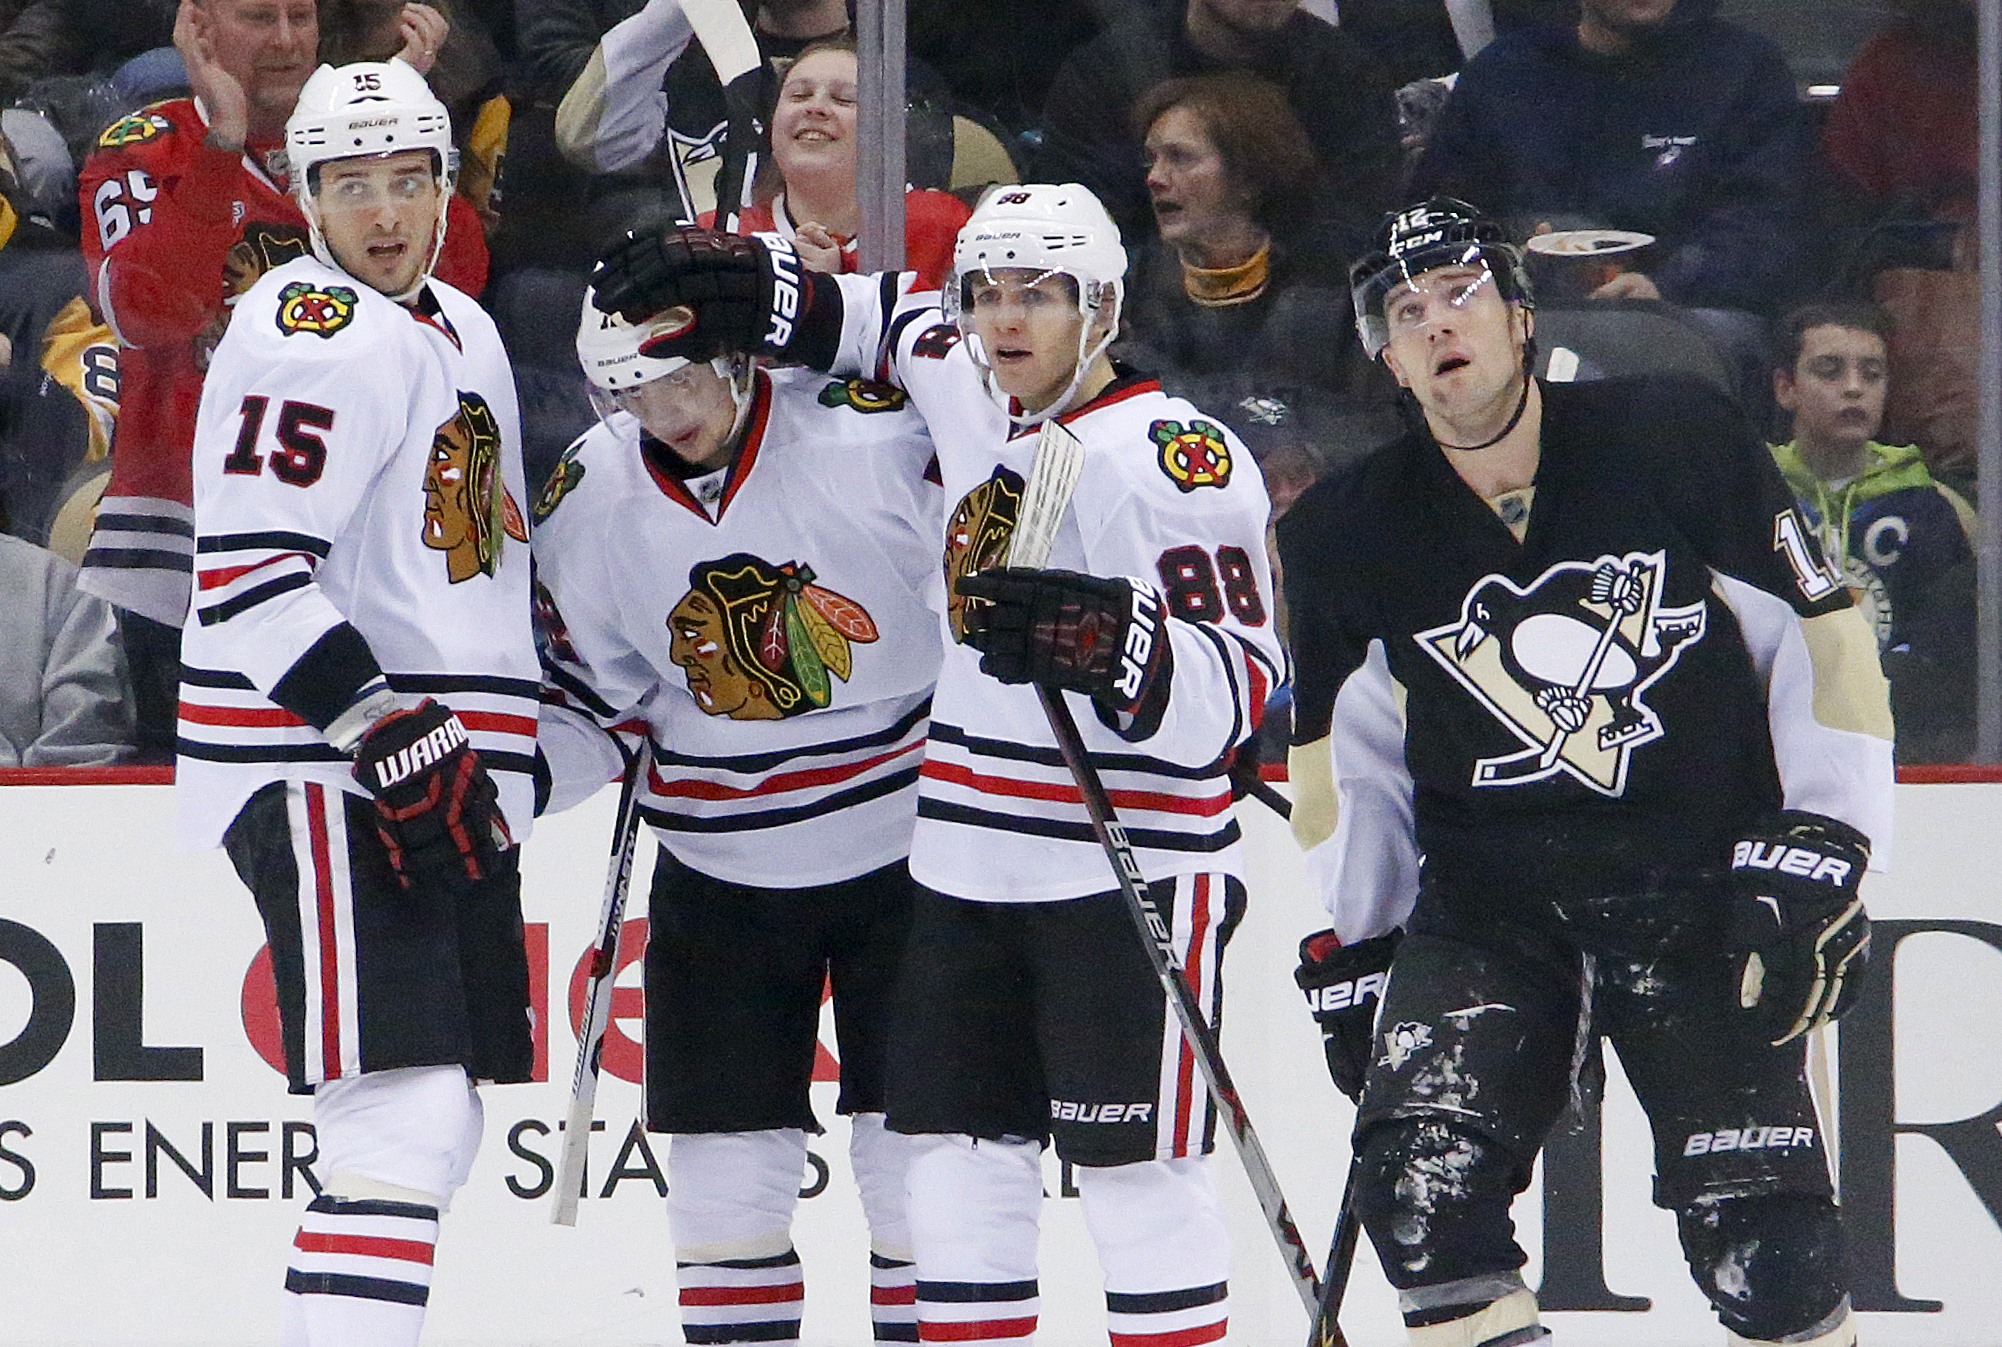 Chicago Blackhawks' Artemi Panarin, second from left, celebrates his goal with teammates Artem Anisimov (15) and Patrick Kane (88) as Pittsburgh Penguins' Ben Lovejoy (12) skates back to his bench during the second period of an NHL hockey game in Pittsbur